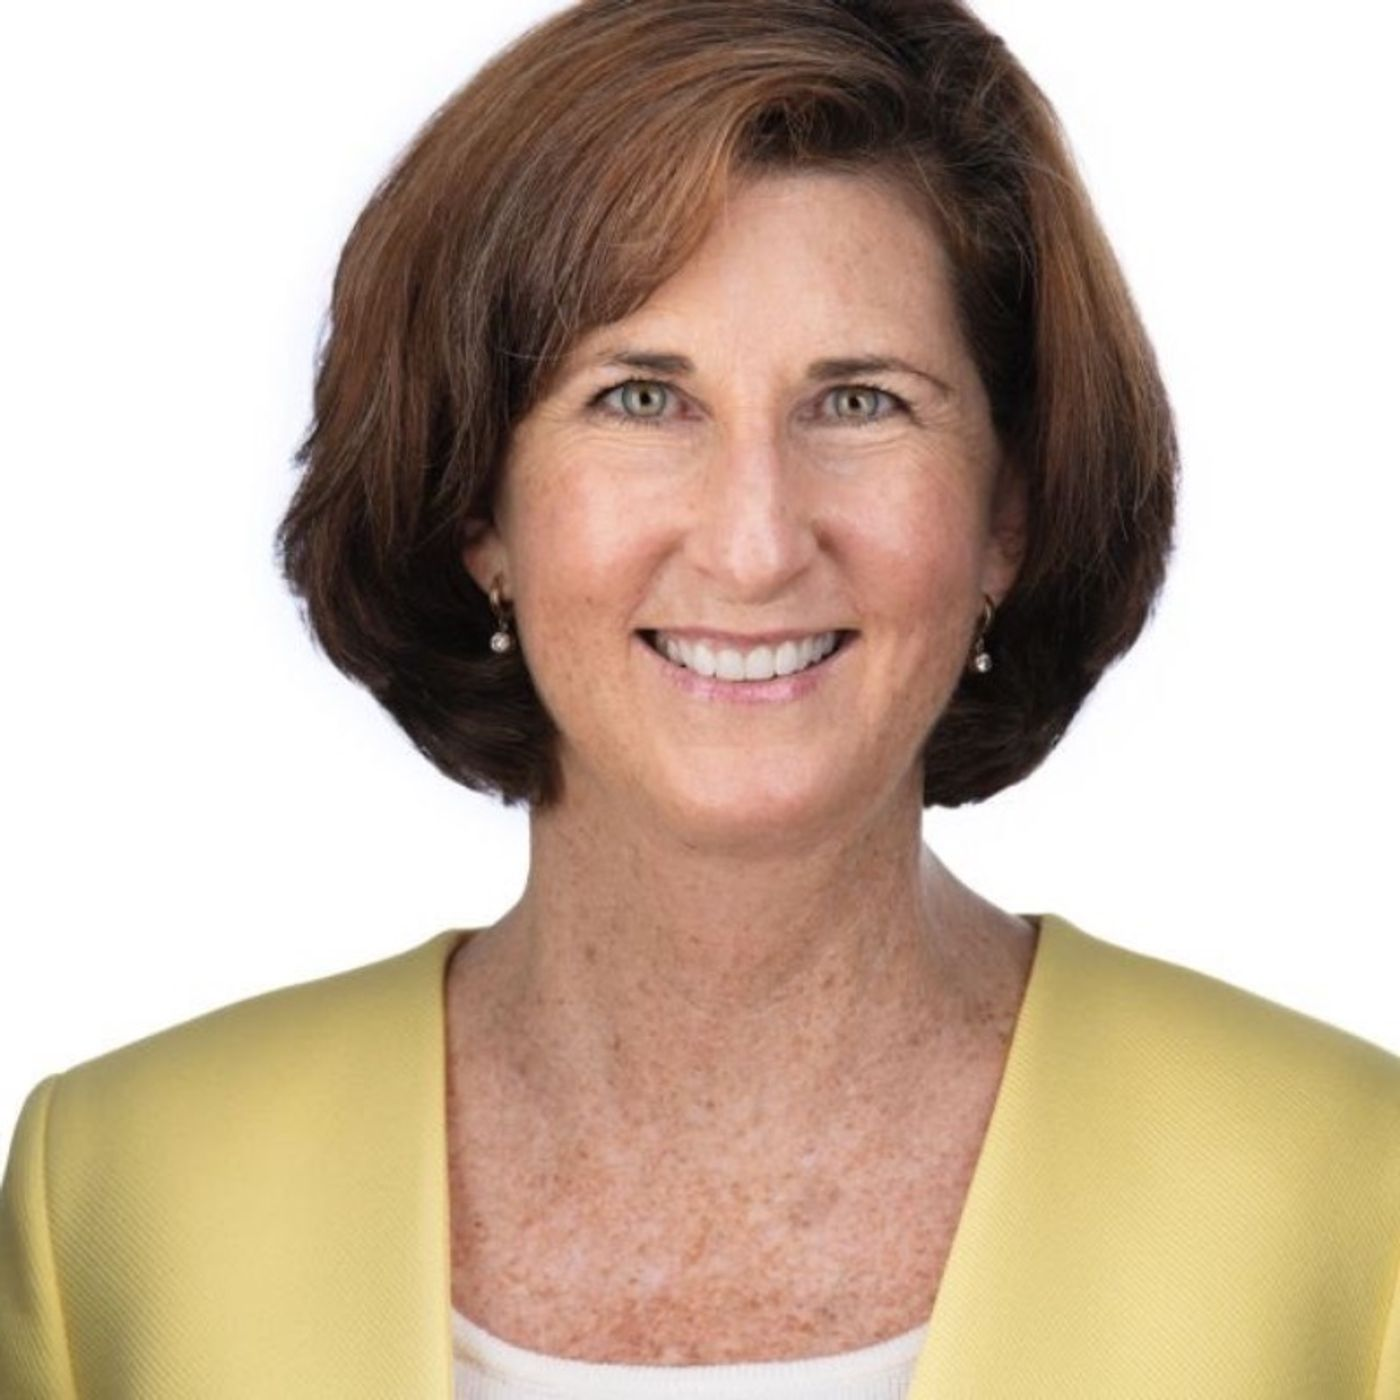 Mayor Lynne Robinson of Bellevue, Washington, a path from Physical Therapist to local government